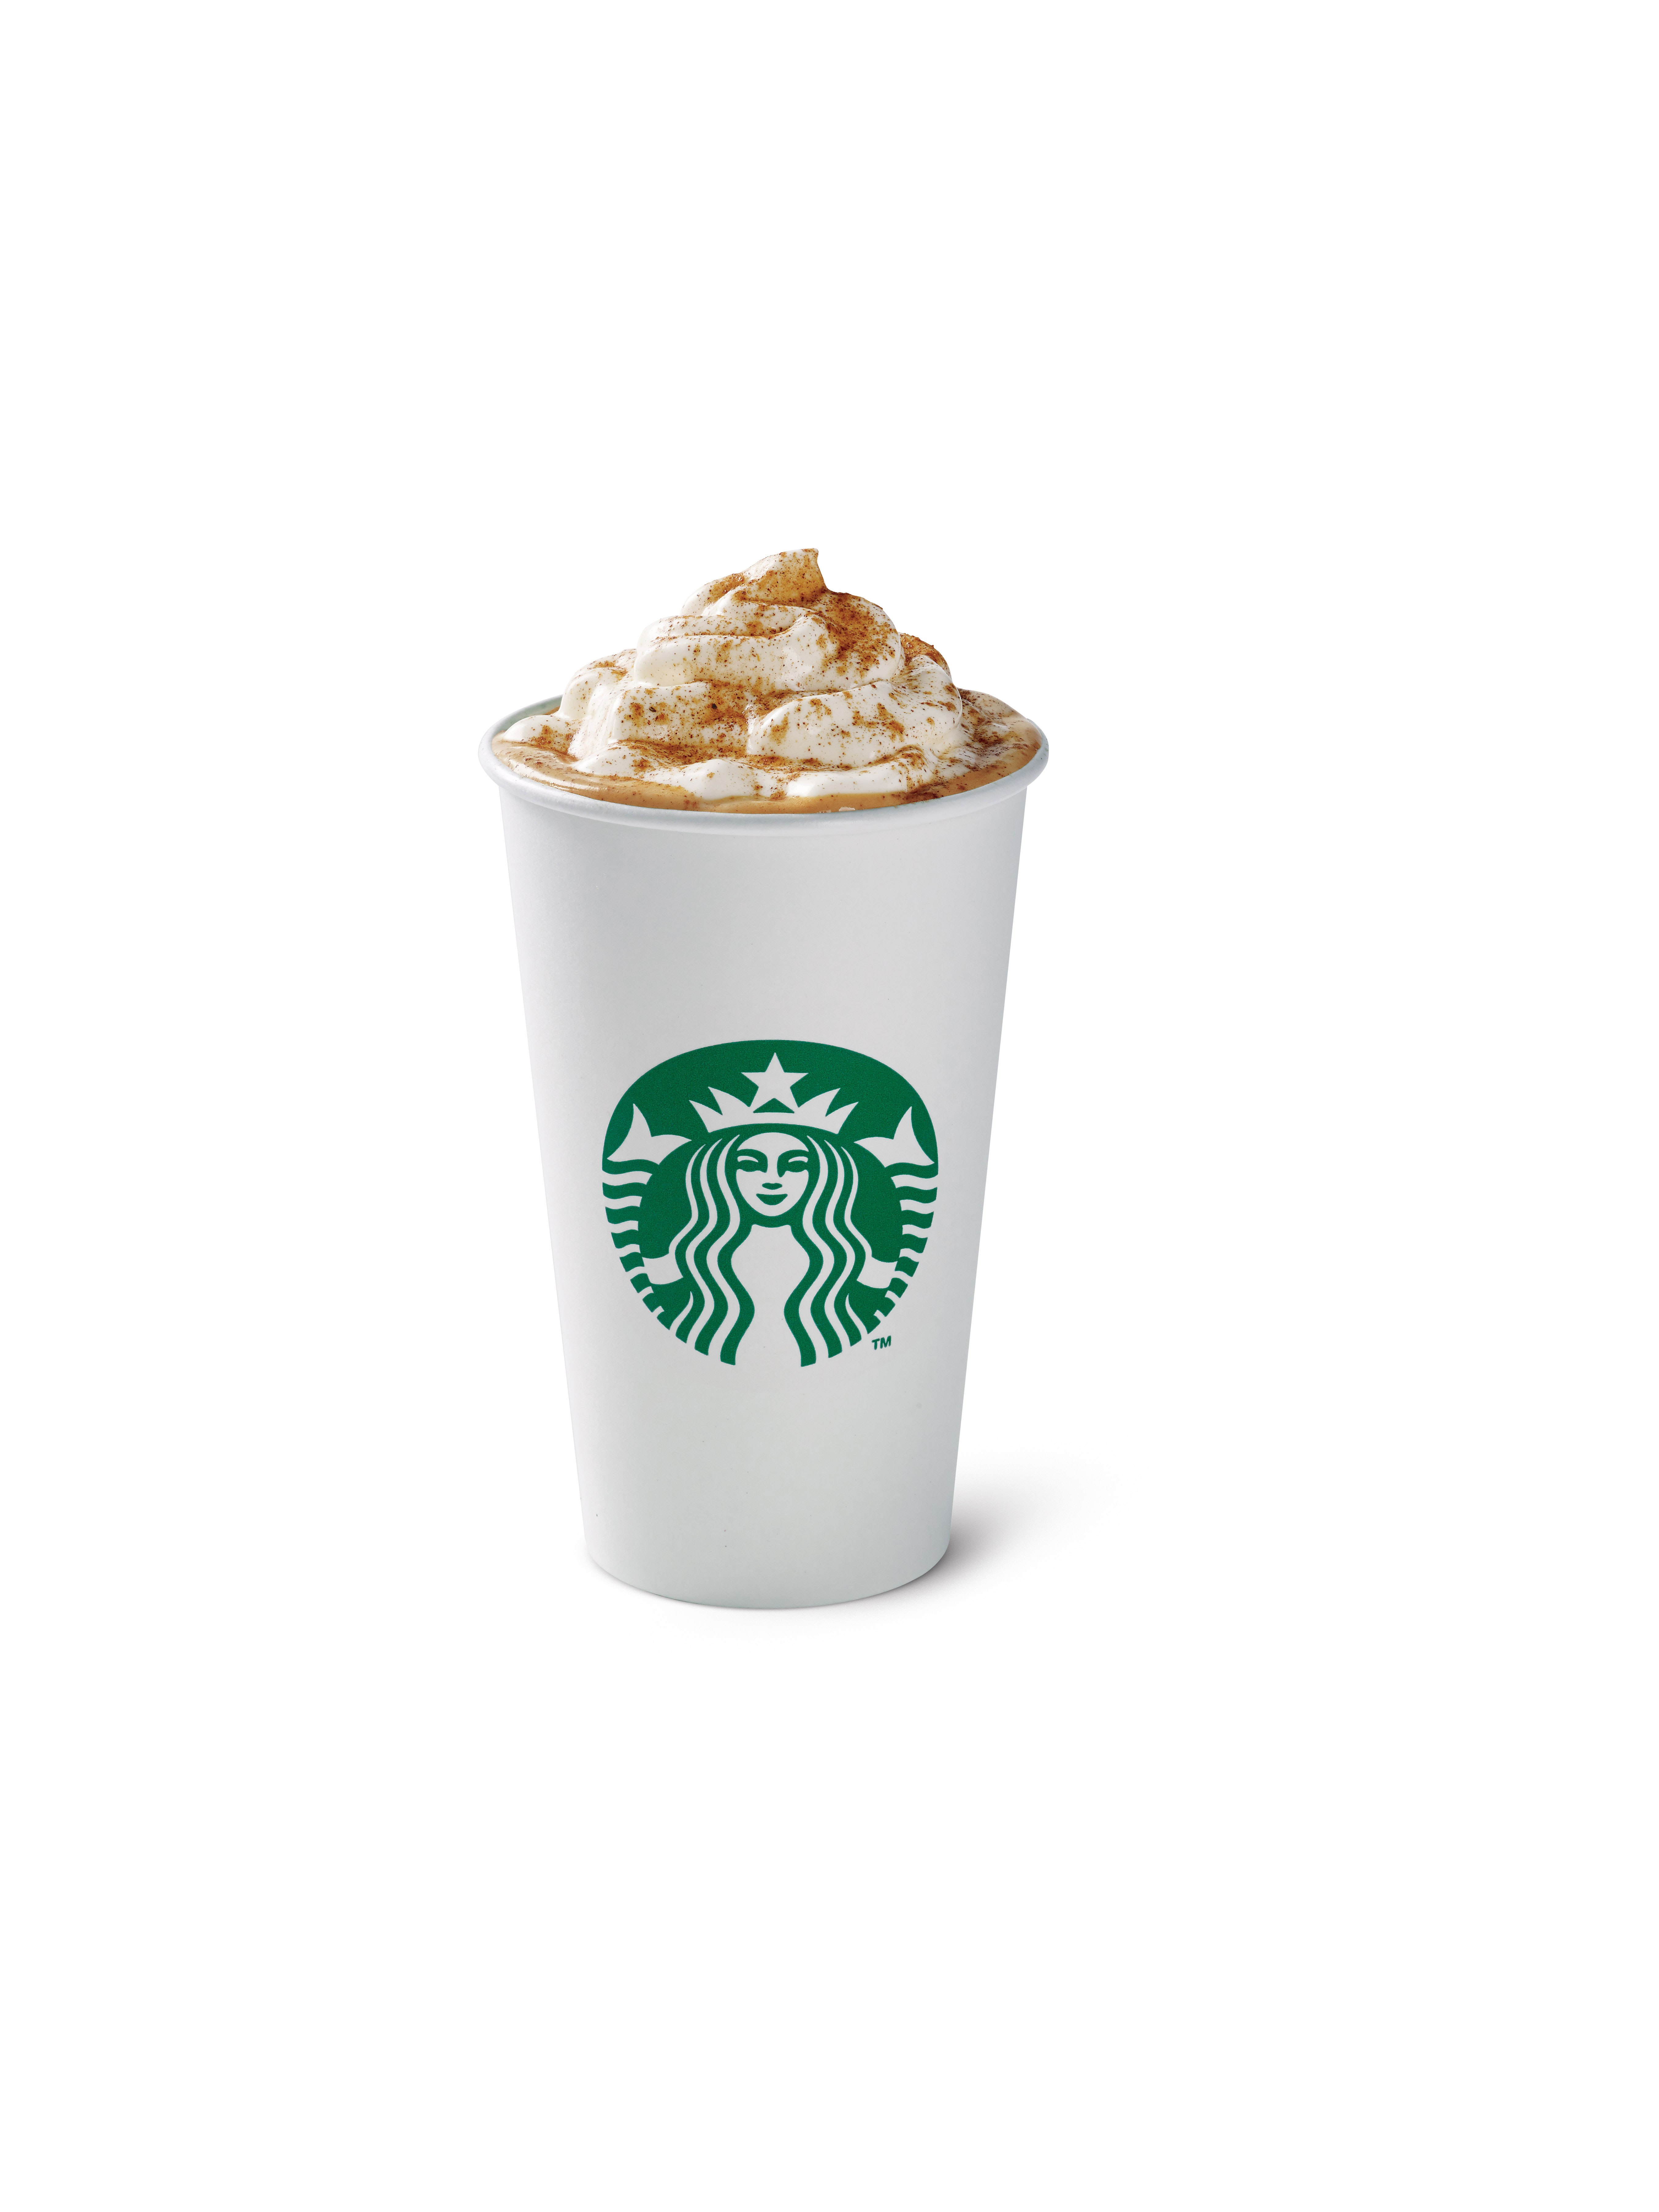 Starbucksu0026#39; Pumpkin Spice Latte Has Officially Returned for Fall